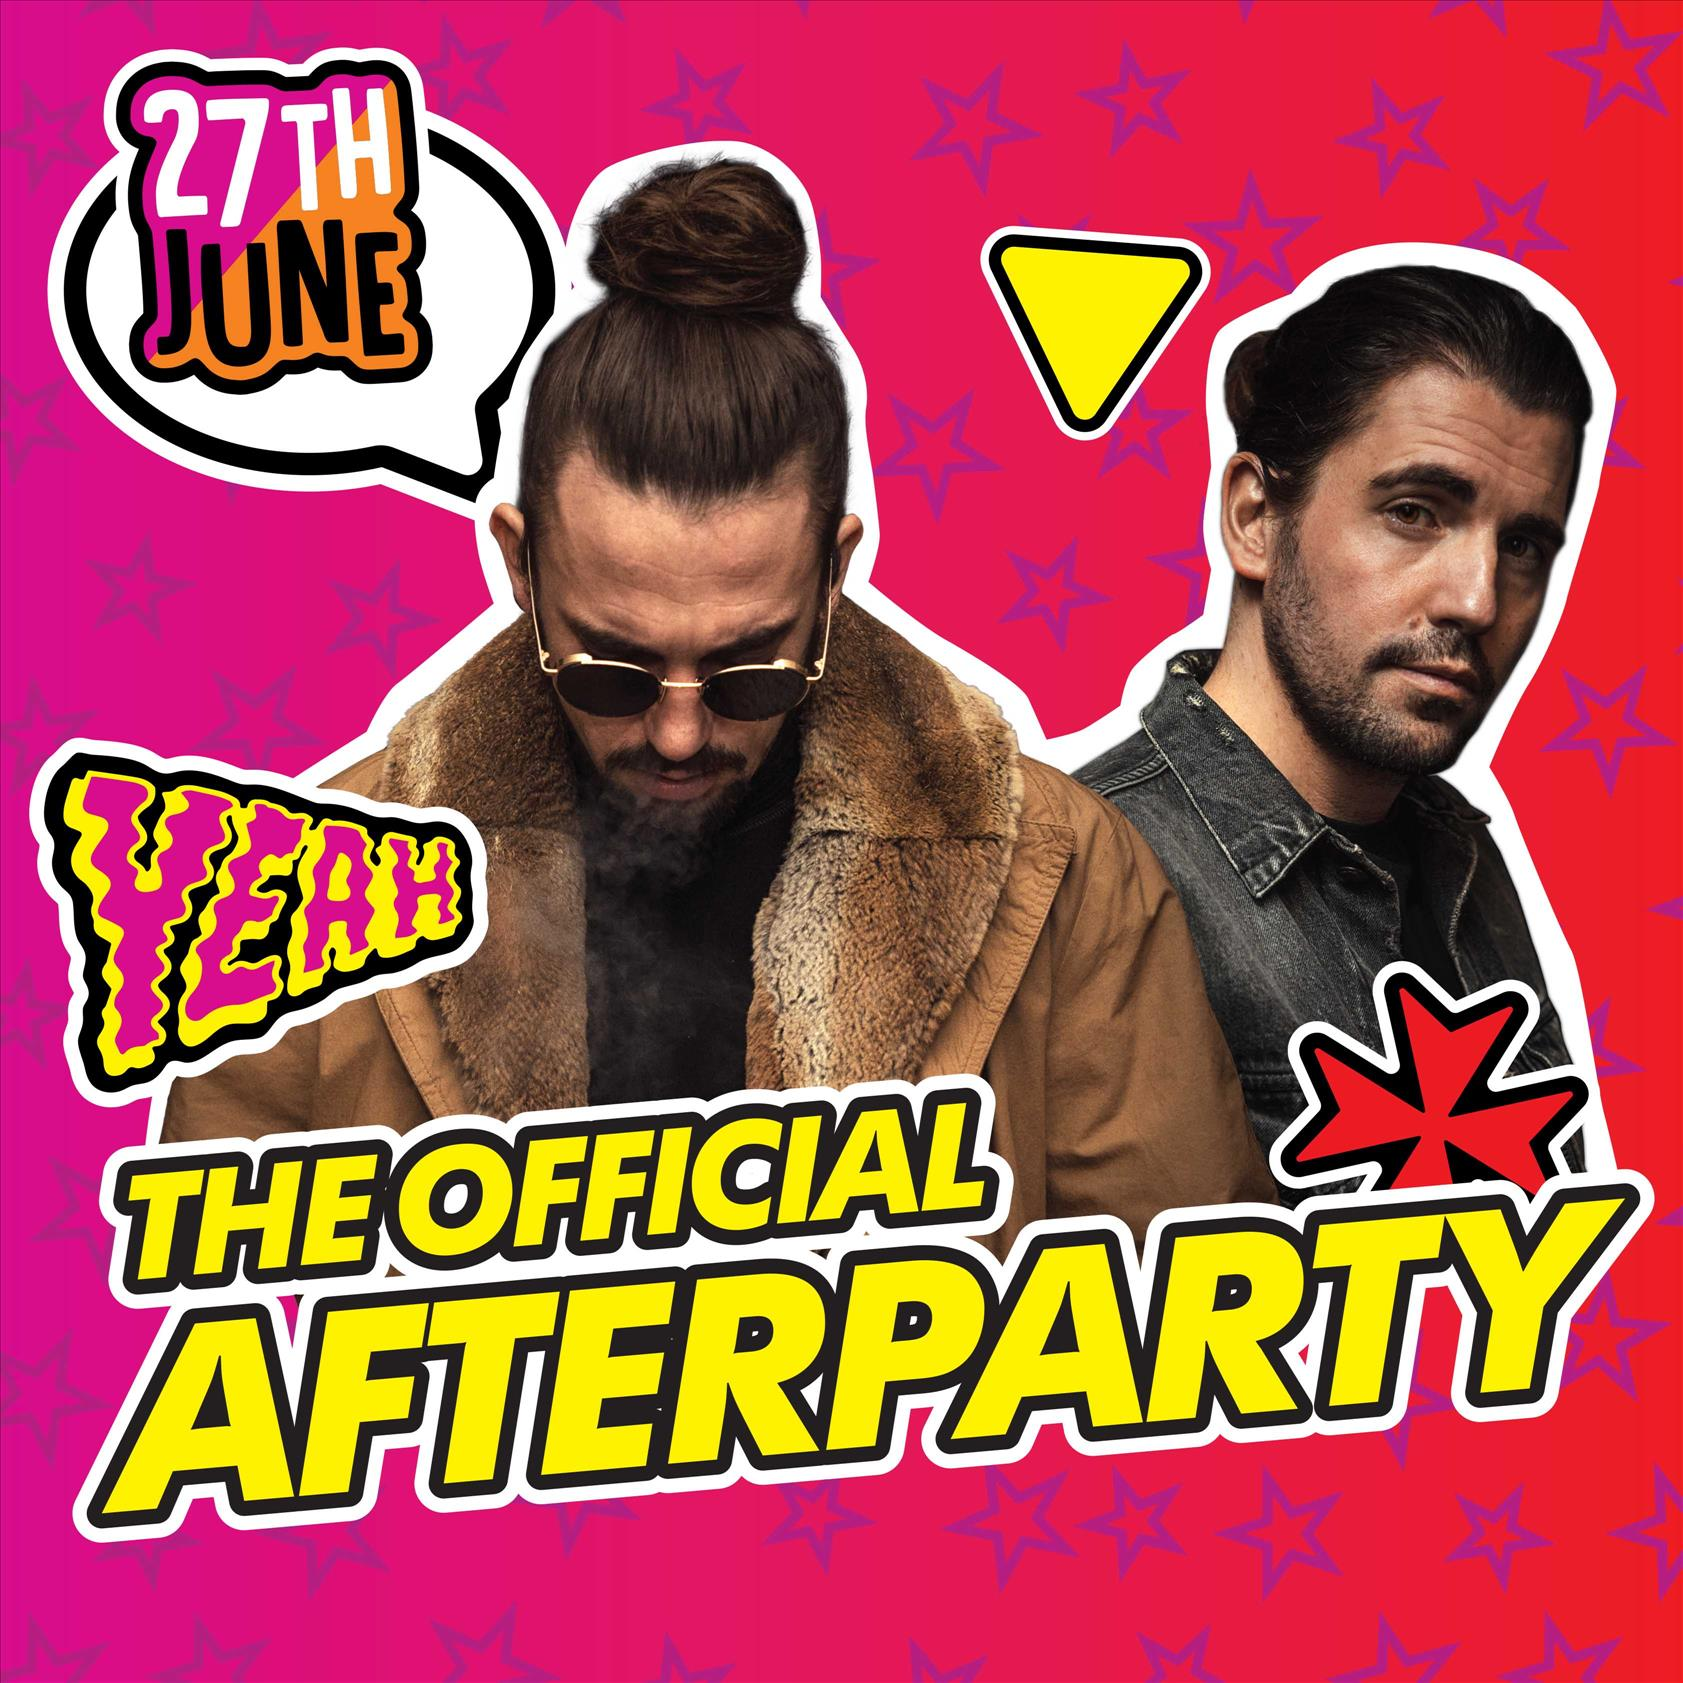 Isle of MTV Malta Music Week 2018 - Official After Party flyer